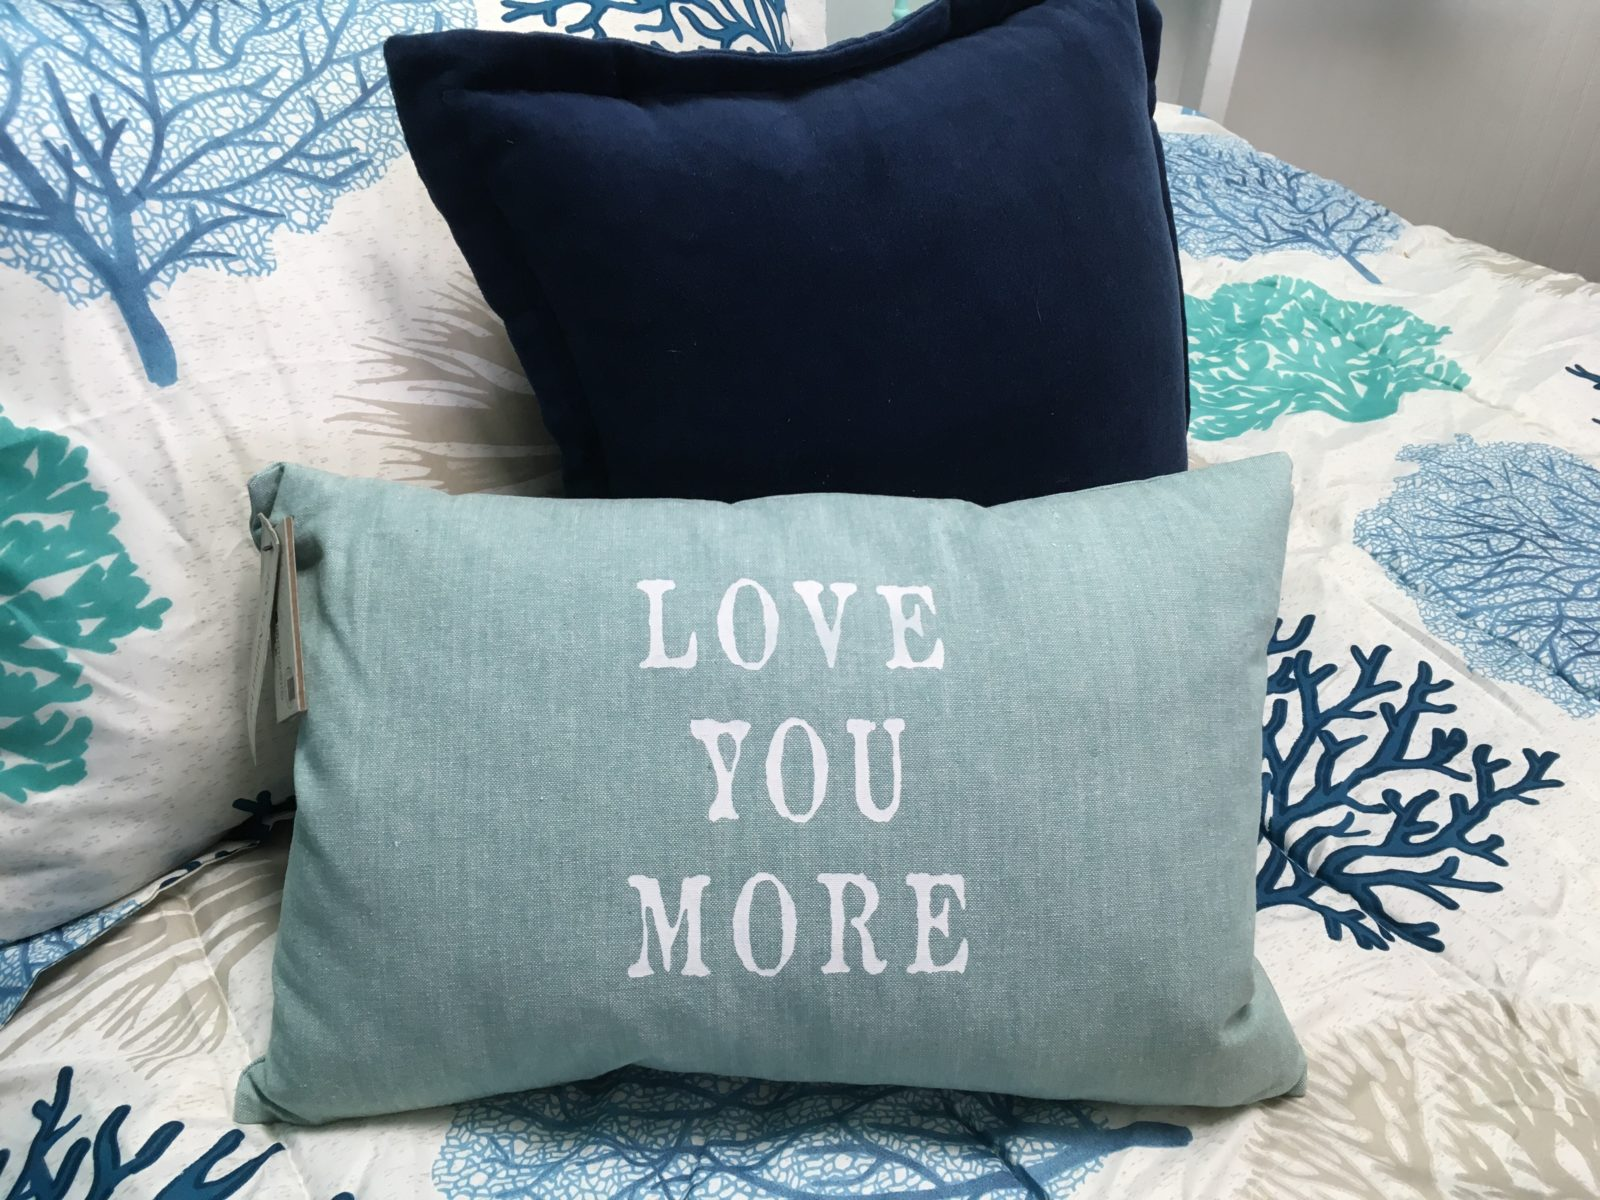 "Love You More Pillow • This 12"" x 18"" Pillow says it all...""Love You More"" ...what a wonderful Valentine's Day Gify for that special someone! Light blue/green chambray fabric cover that zips off for easy cleaning and a goose down feather insert for a squishy, cozy feel."